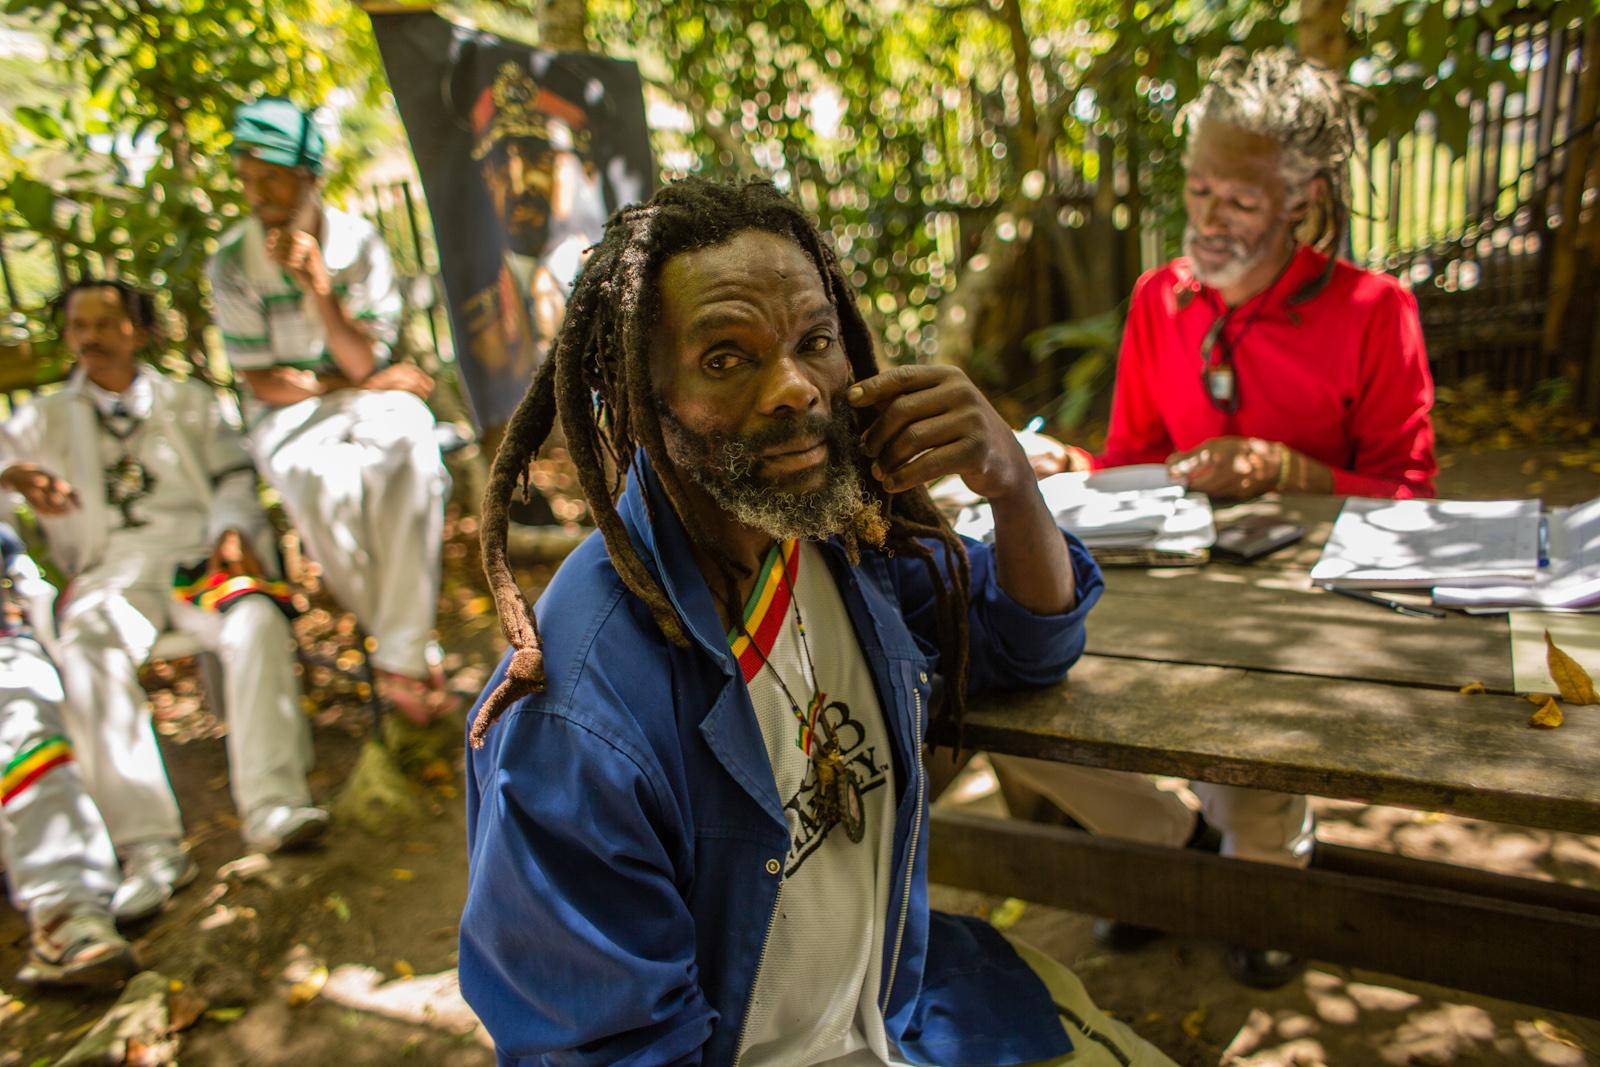 KNYSNA, SOUTH AFRICA - FEBRUARY 07, 2015: Brother Jabu, 50, (C ) and brother Wilfred Jansen, 49, (R ) during the Southern Cape provincial meeting of the three different mansions within Rastafari culture at the Rasta community Judah Square on February 07, 2015 in Knysna, South Africa. The provincial meeting brings together members of the three different Rastafari mansions, which are the 'Nyabinghi', 'Twelve Tribes of Israel' and 'Bobo Shanti', in order to work towards unity and a communal voice as a representation of Rastafari culture and religion. As a religious minority group, the Rastafari movement strives towards the same status as any other religion and a better treatment under the South African government.